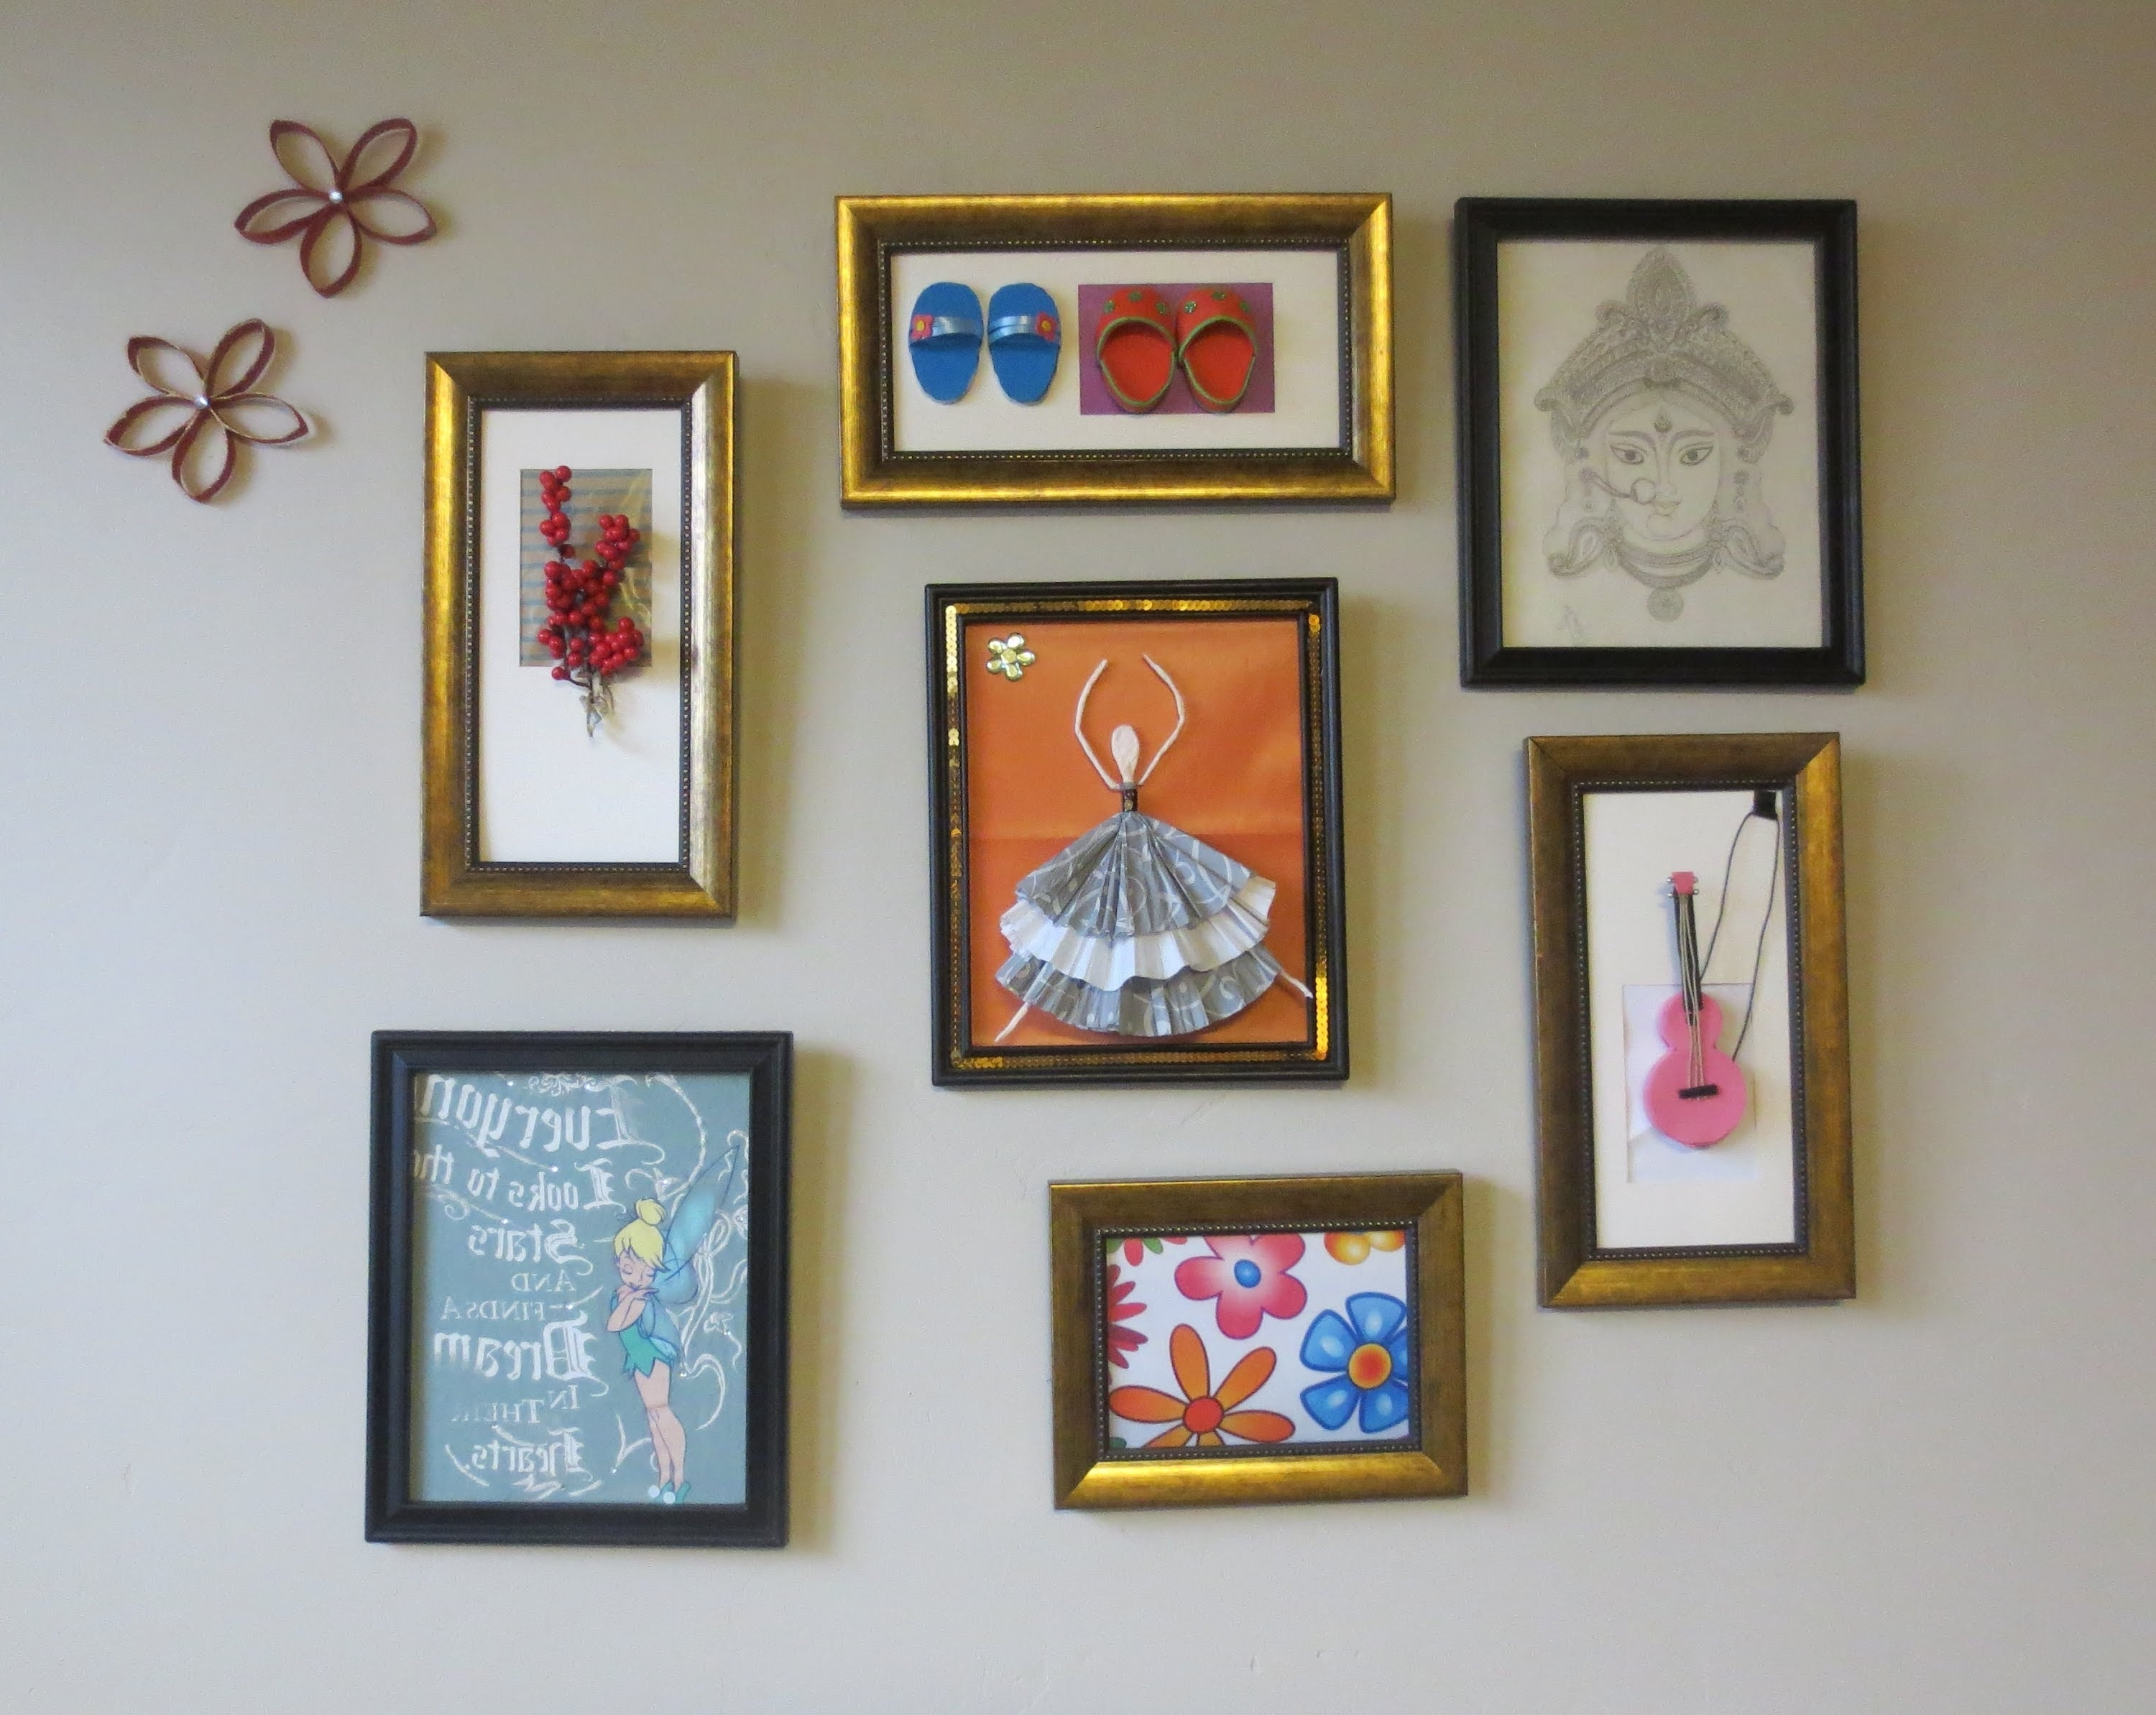 Home Decor : Tshirt Graphic & 3d Wall Art Picture Frame Collage With Widely Used 3d Wall Art Canvas (View 15 of 15)